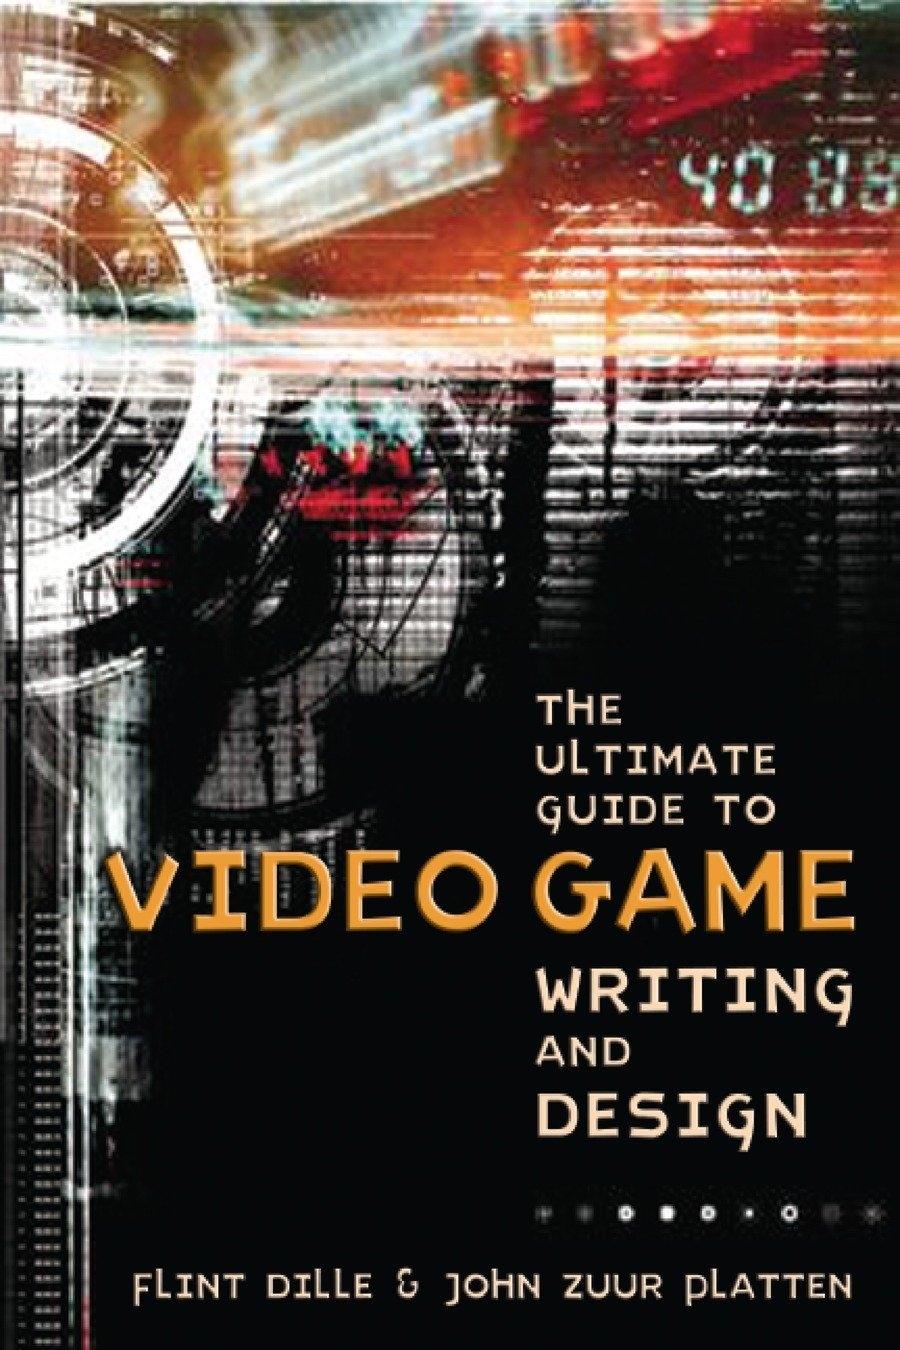 The Ultimate Guide to Video Game Writing and Design: Amazon.co.uk ...